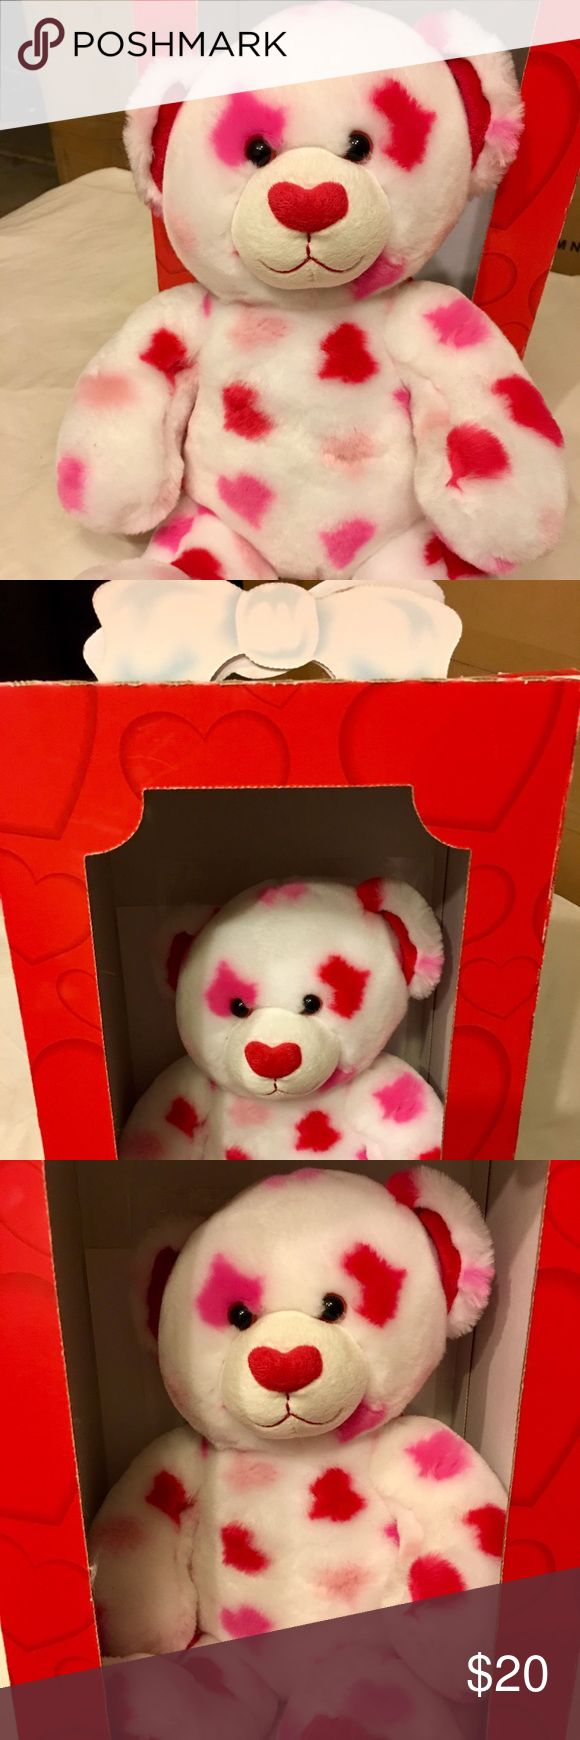 Best 25 obtain birth certificate ideas on pinterest parent or heart shaped build a bear perfect for the upcoming valentines day or love day aiddatafo Gallery